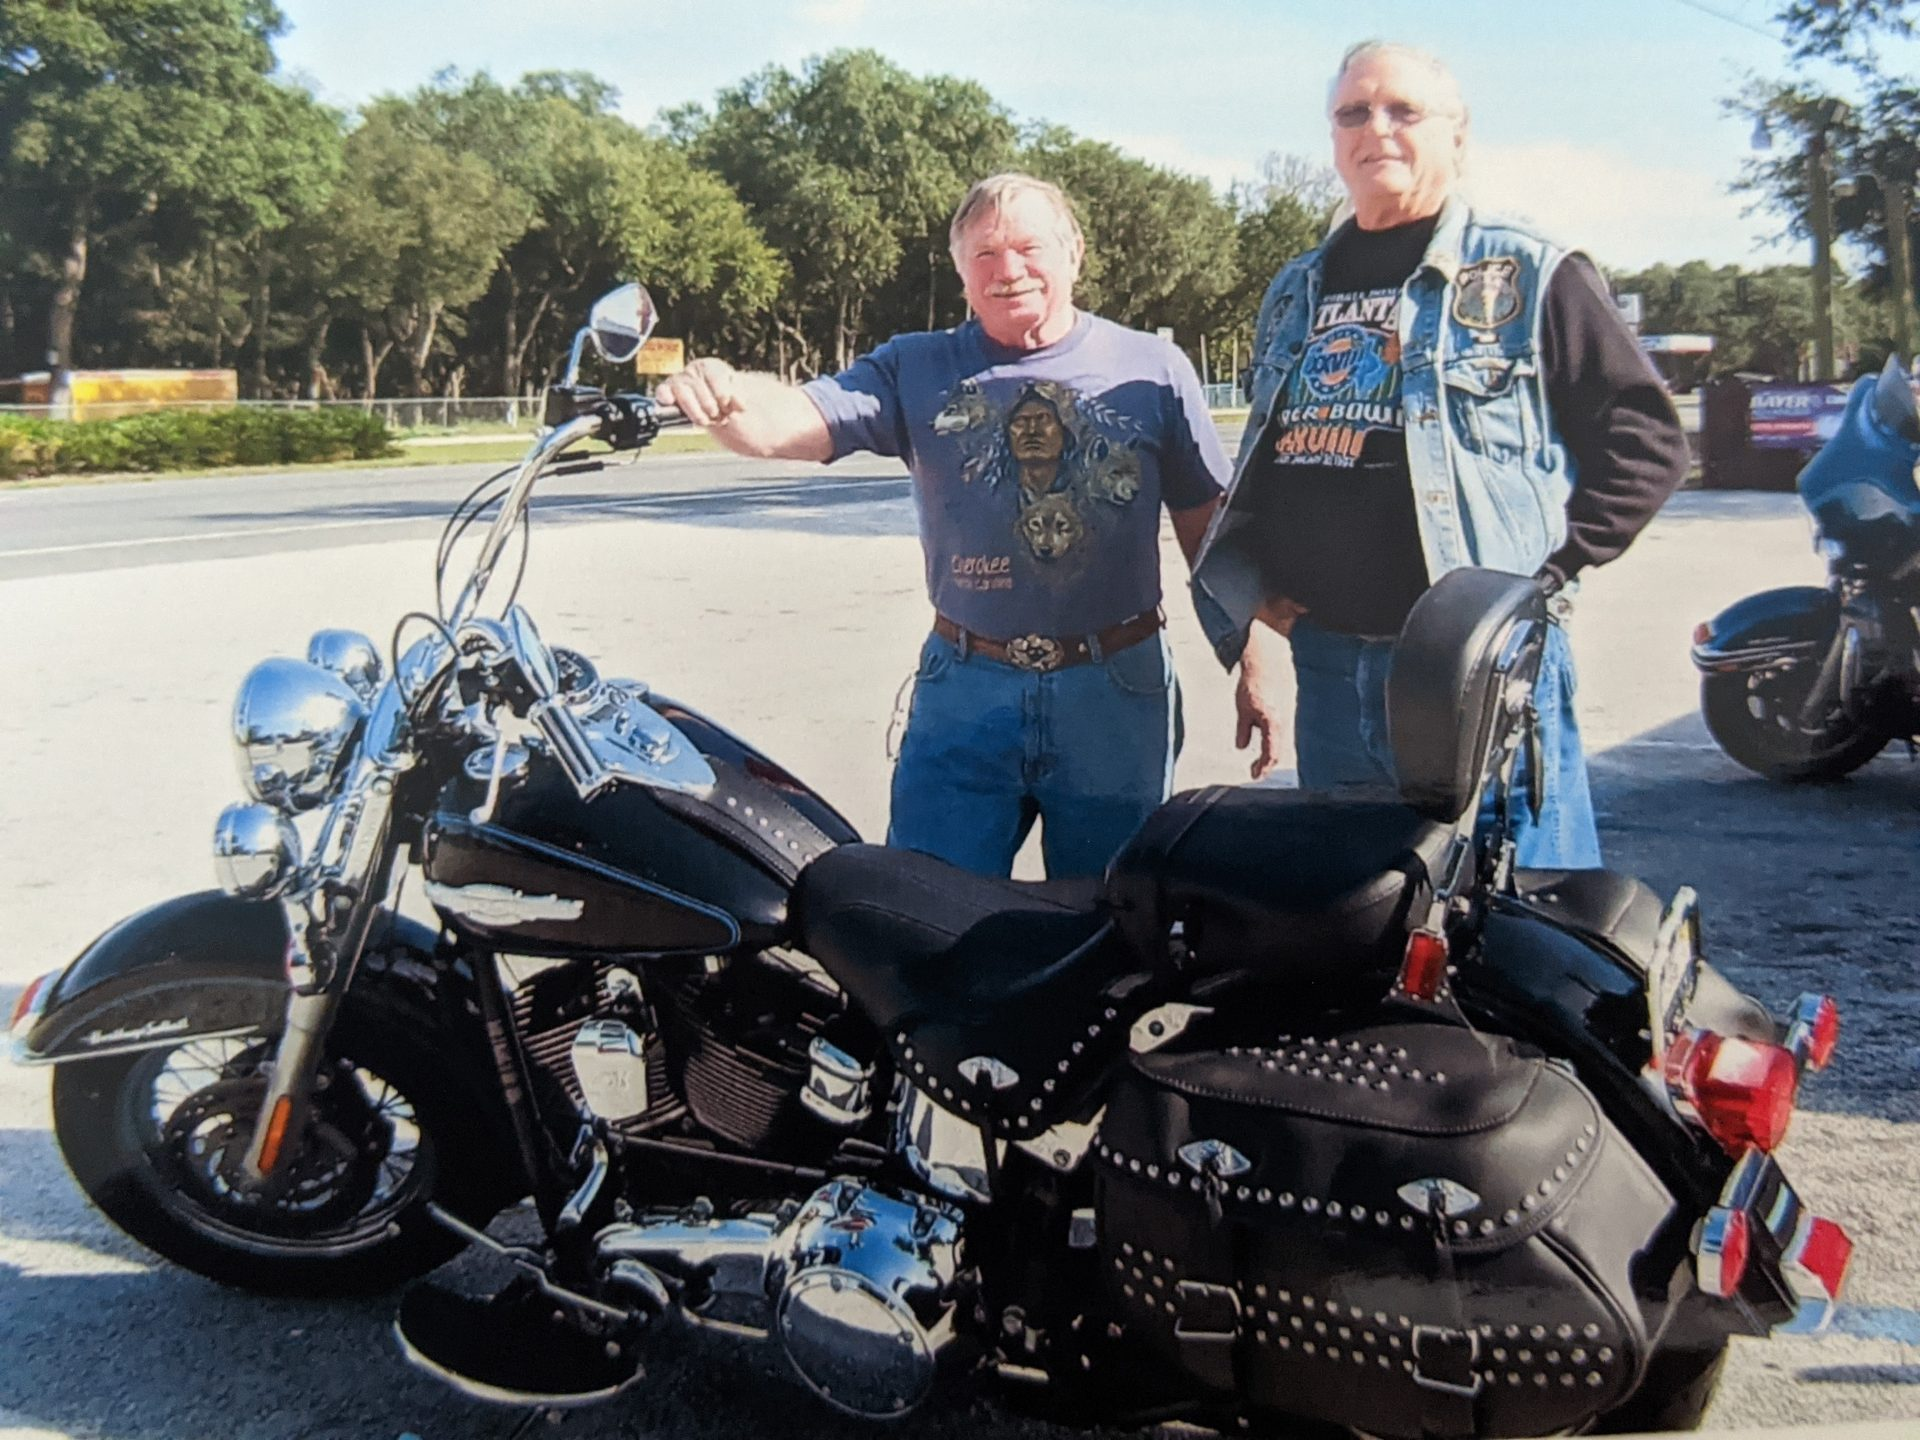 Chief Bishopp, and myself, Sgt. MAC McConnell, worked together for many years on the DOD Police Dept.  He was a great guy and a good friend.